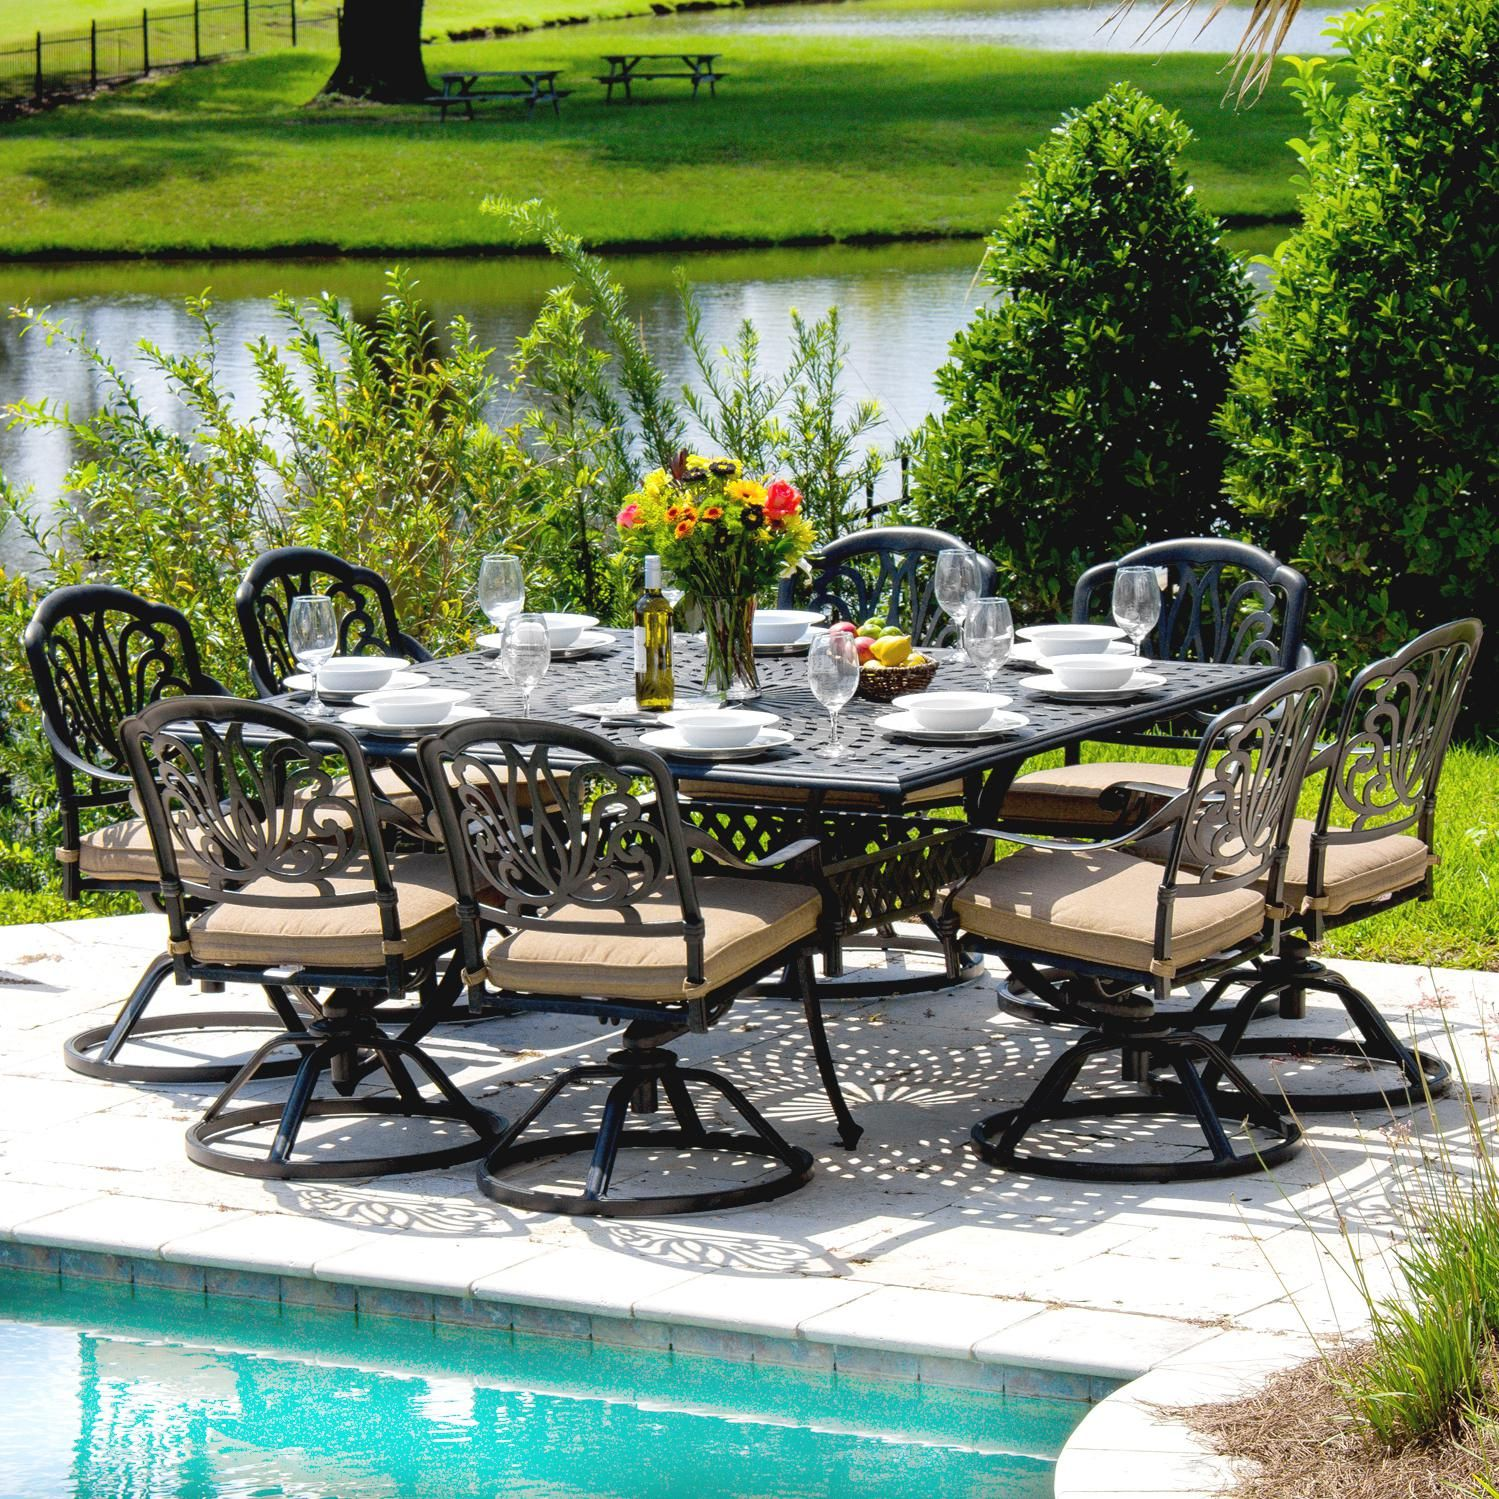 Rosedown 8 Person Cast Aluminum Patio Dining Set With Cast Aluminum Table :  Ultimate Patio